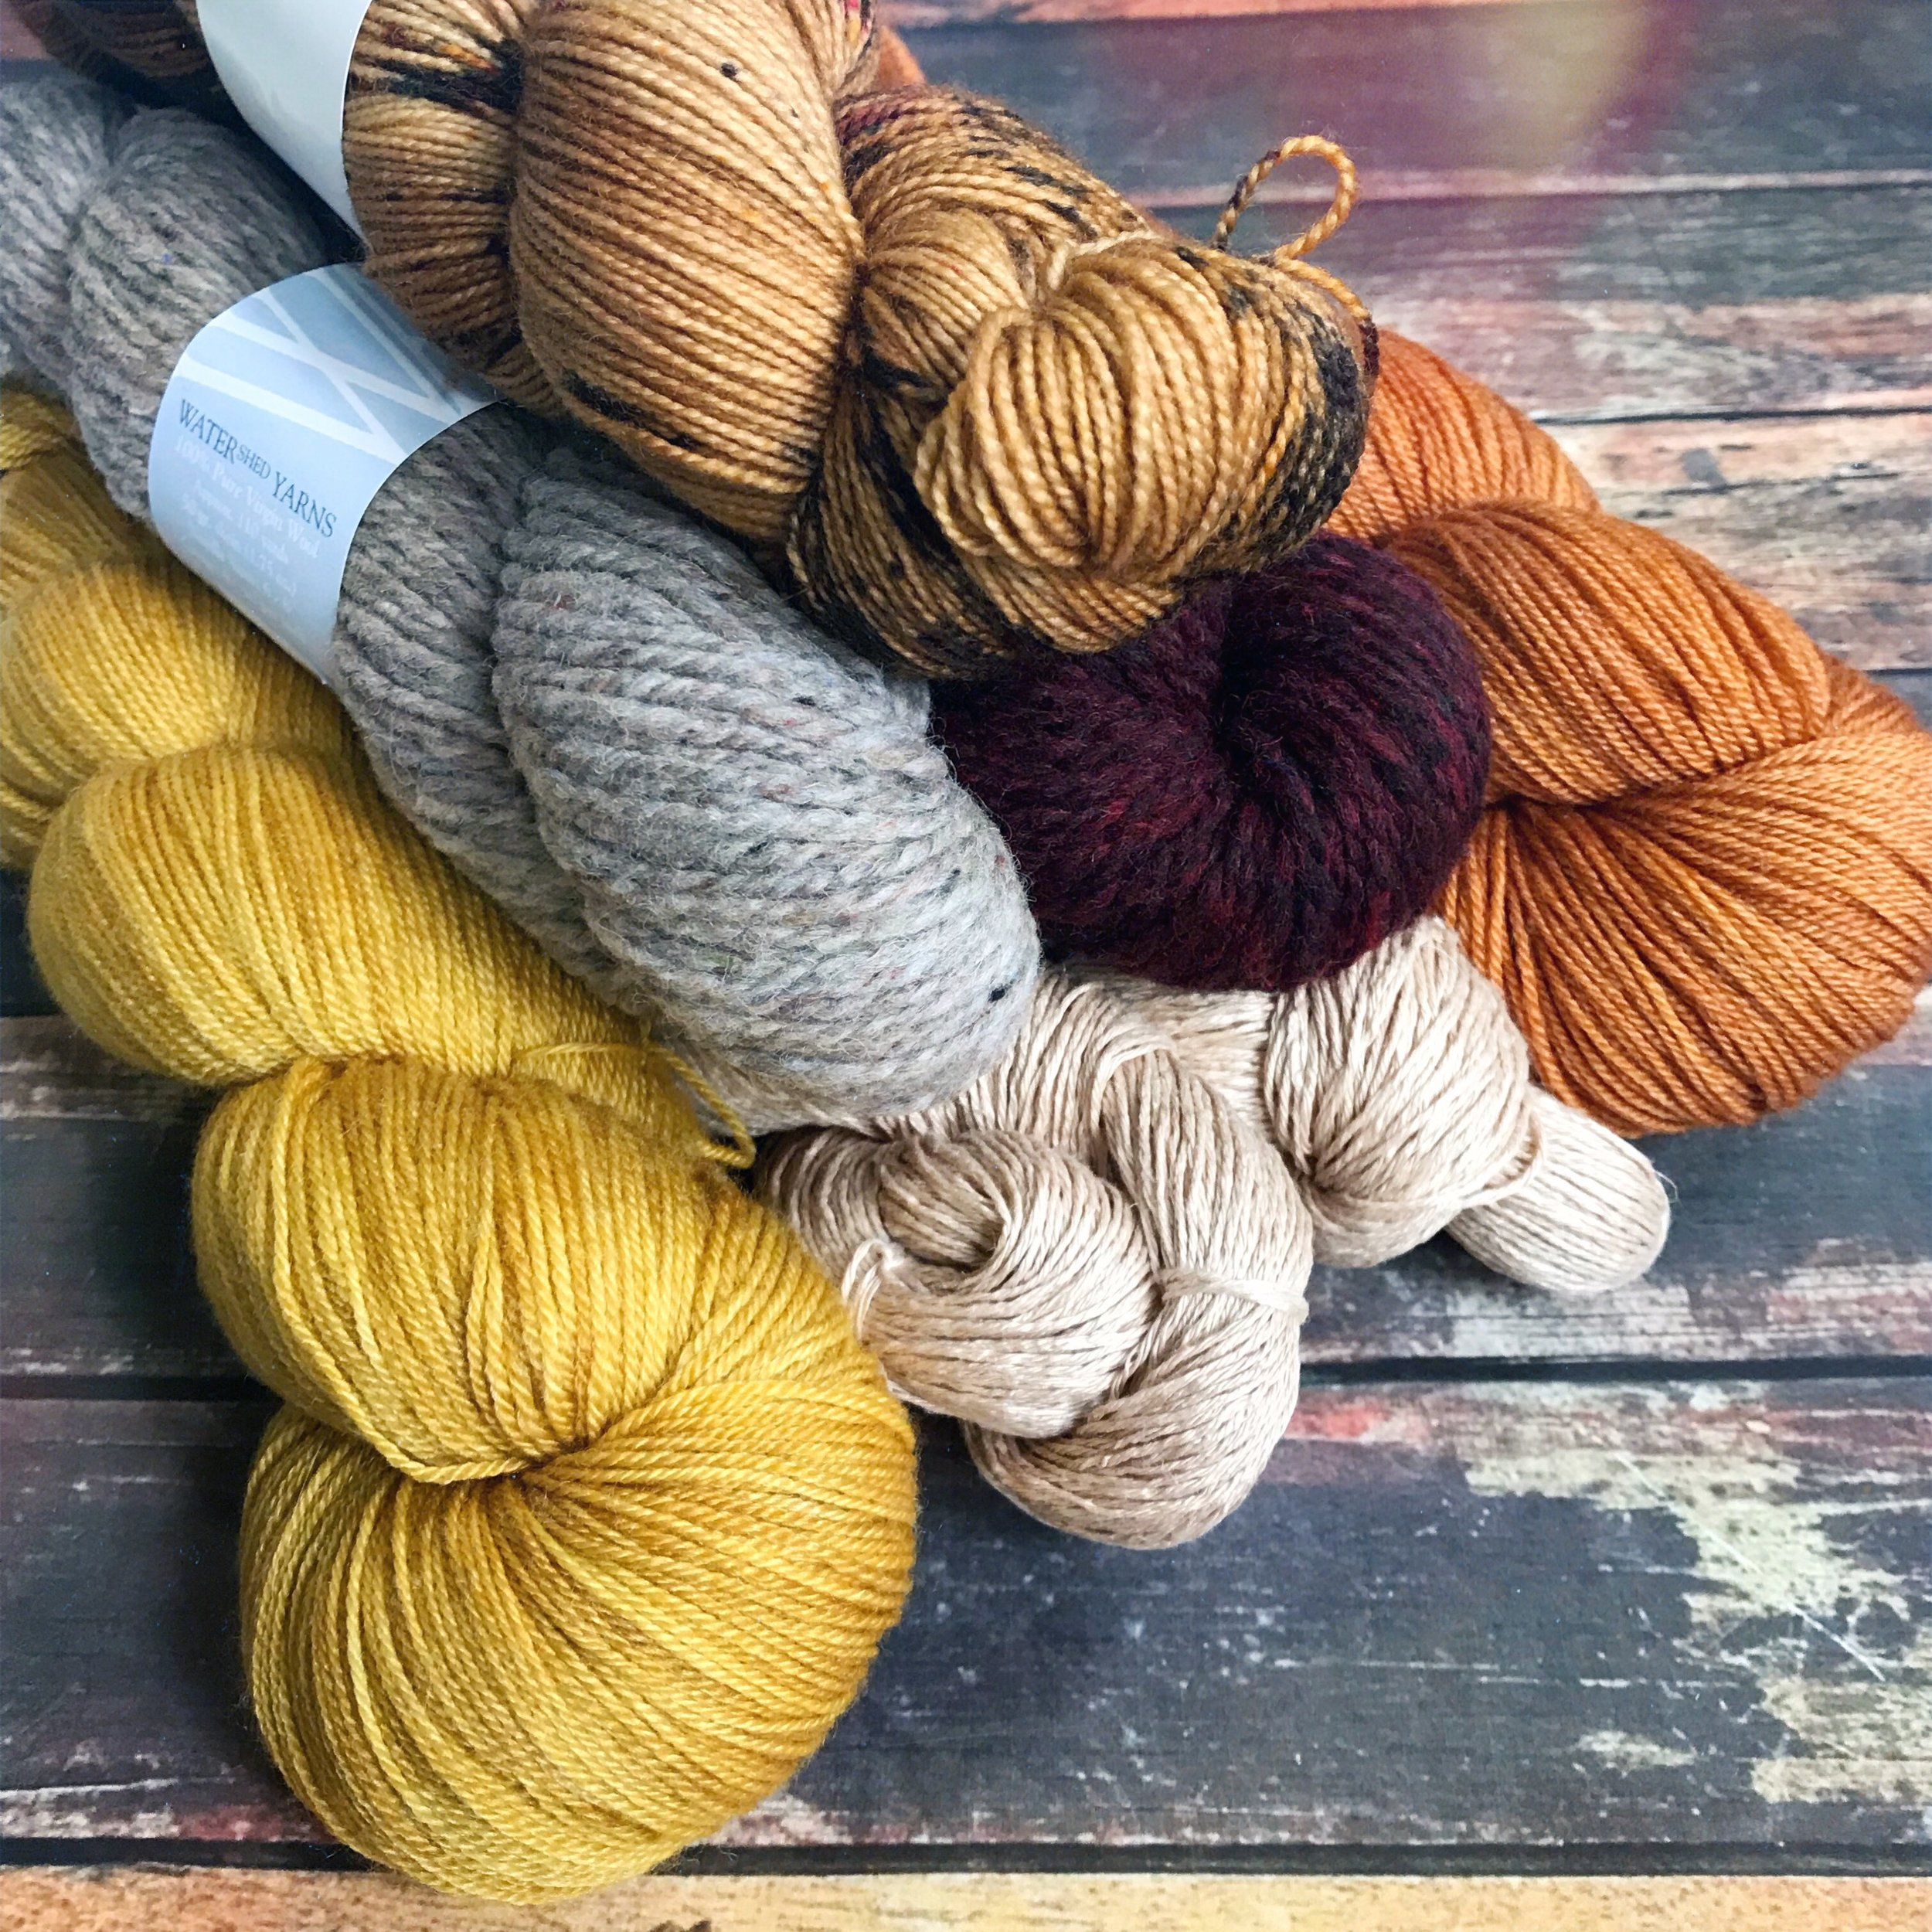 Some yarn for 2019 designs!